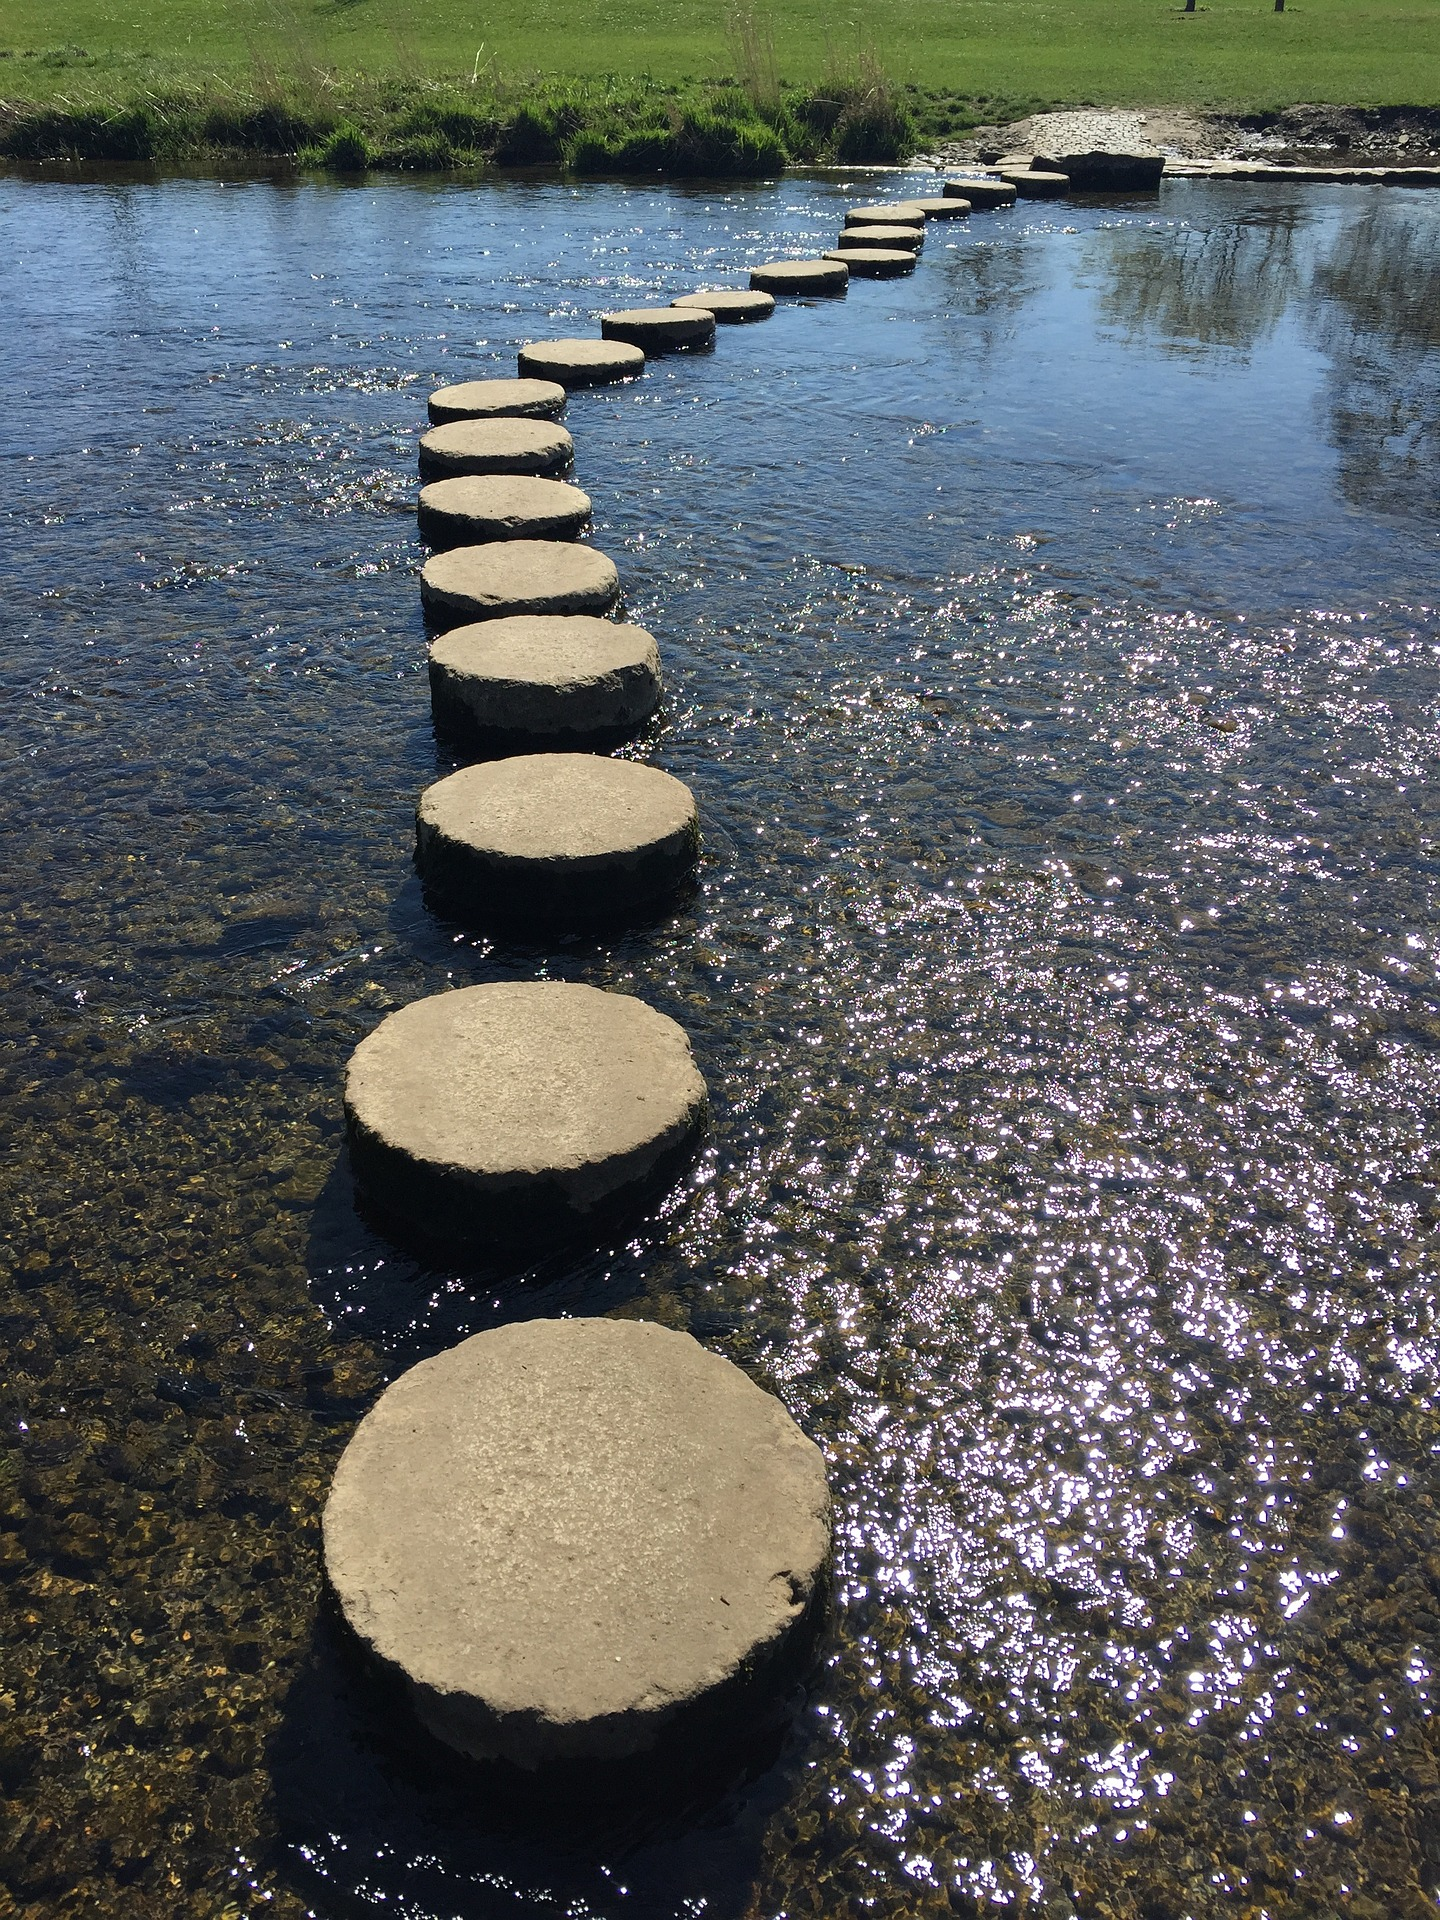 supervision_BonnyJodwin__stepping-stones-763985_1920